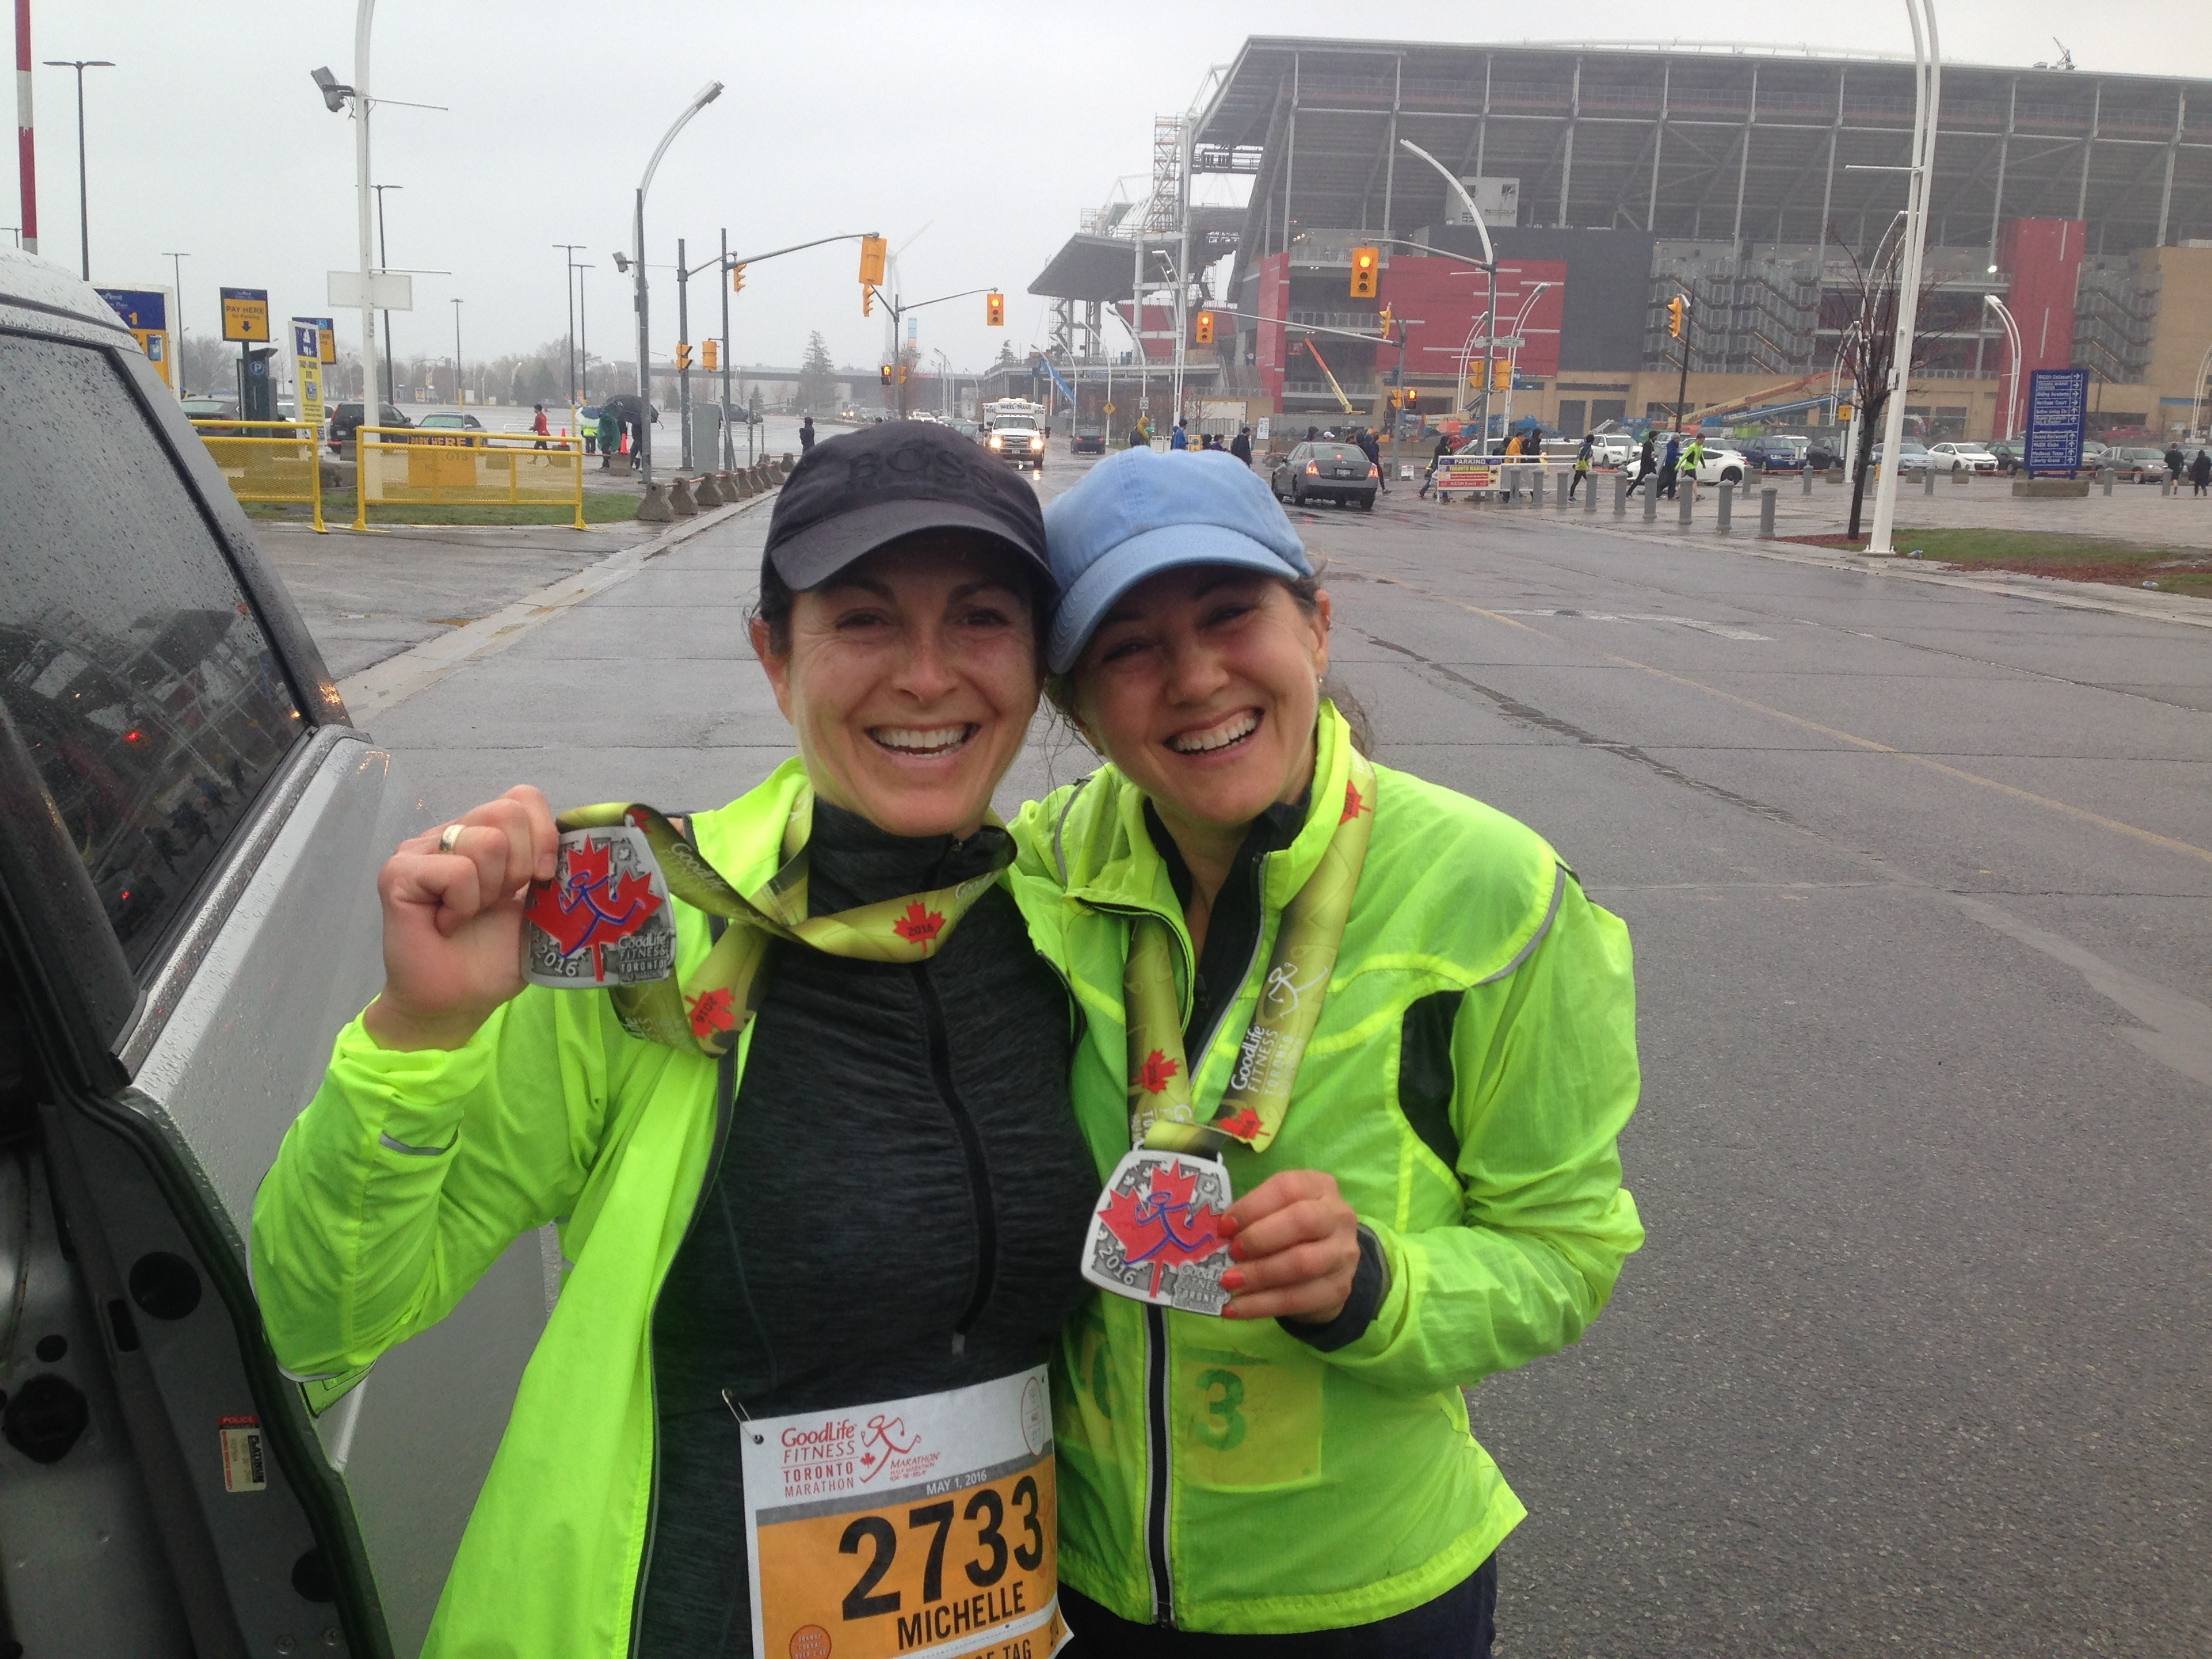 exercise, half marathon, goodlife, running, race, exercise community, fitness, best friends, running friend